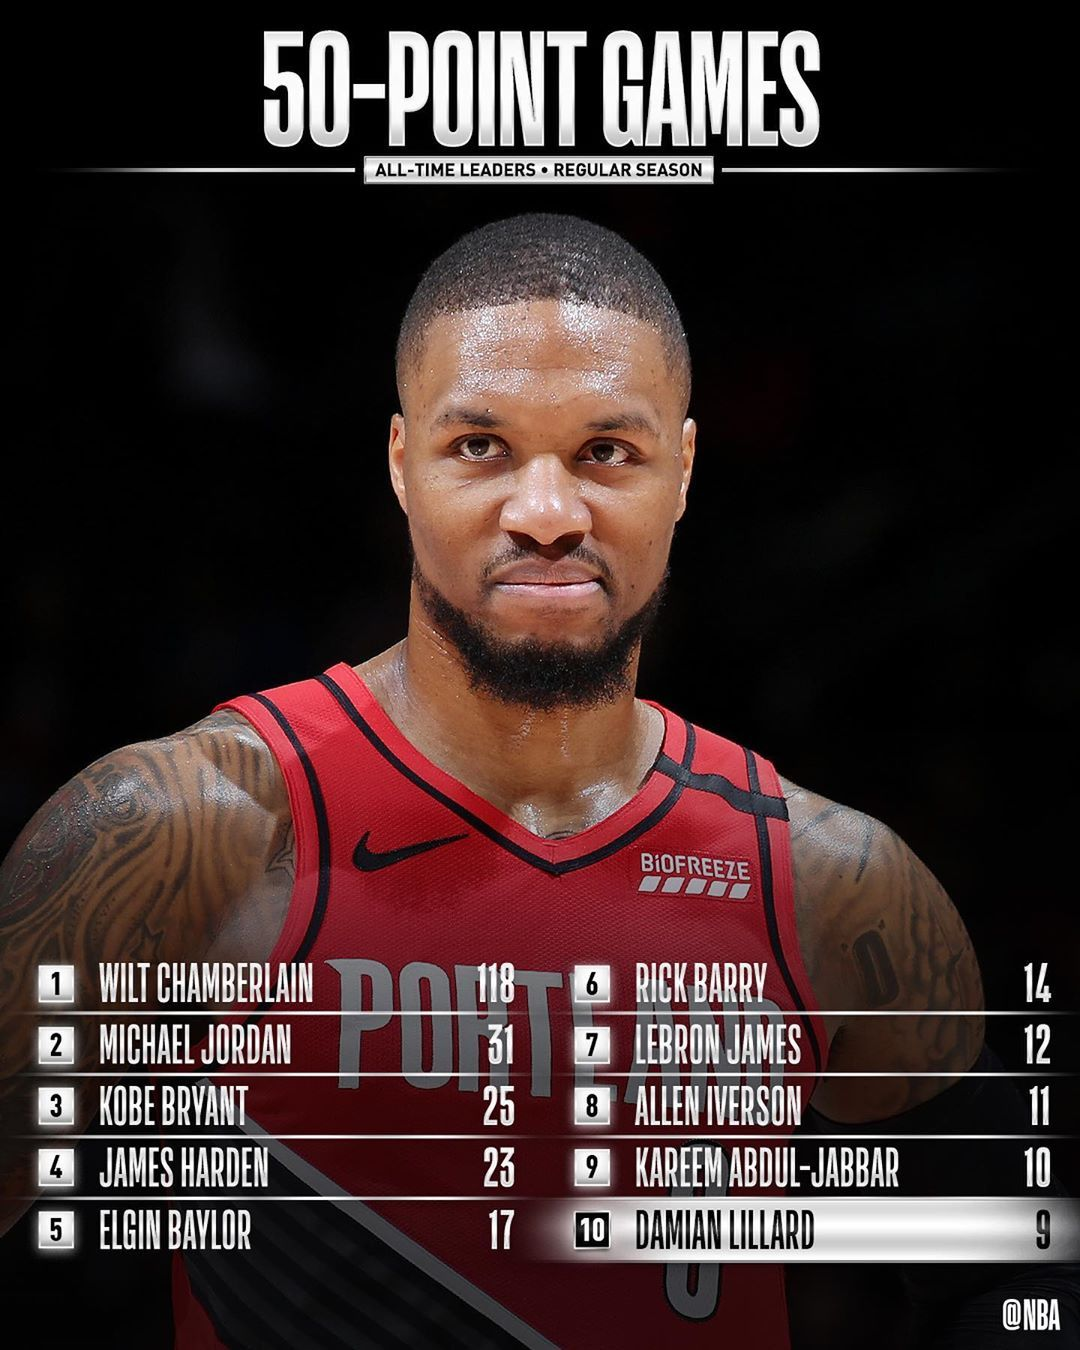 Recently Moving Into The Top 10 For 50 Point Games We Showcase The Best Bucket From Each Of Damianlillard S 50 Point Performanc Nba Elgin Baylor Dame Dolla